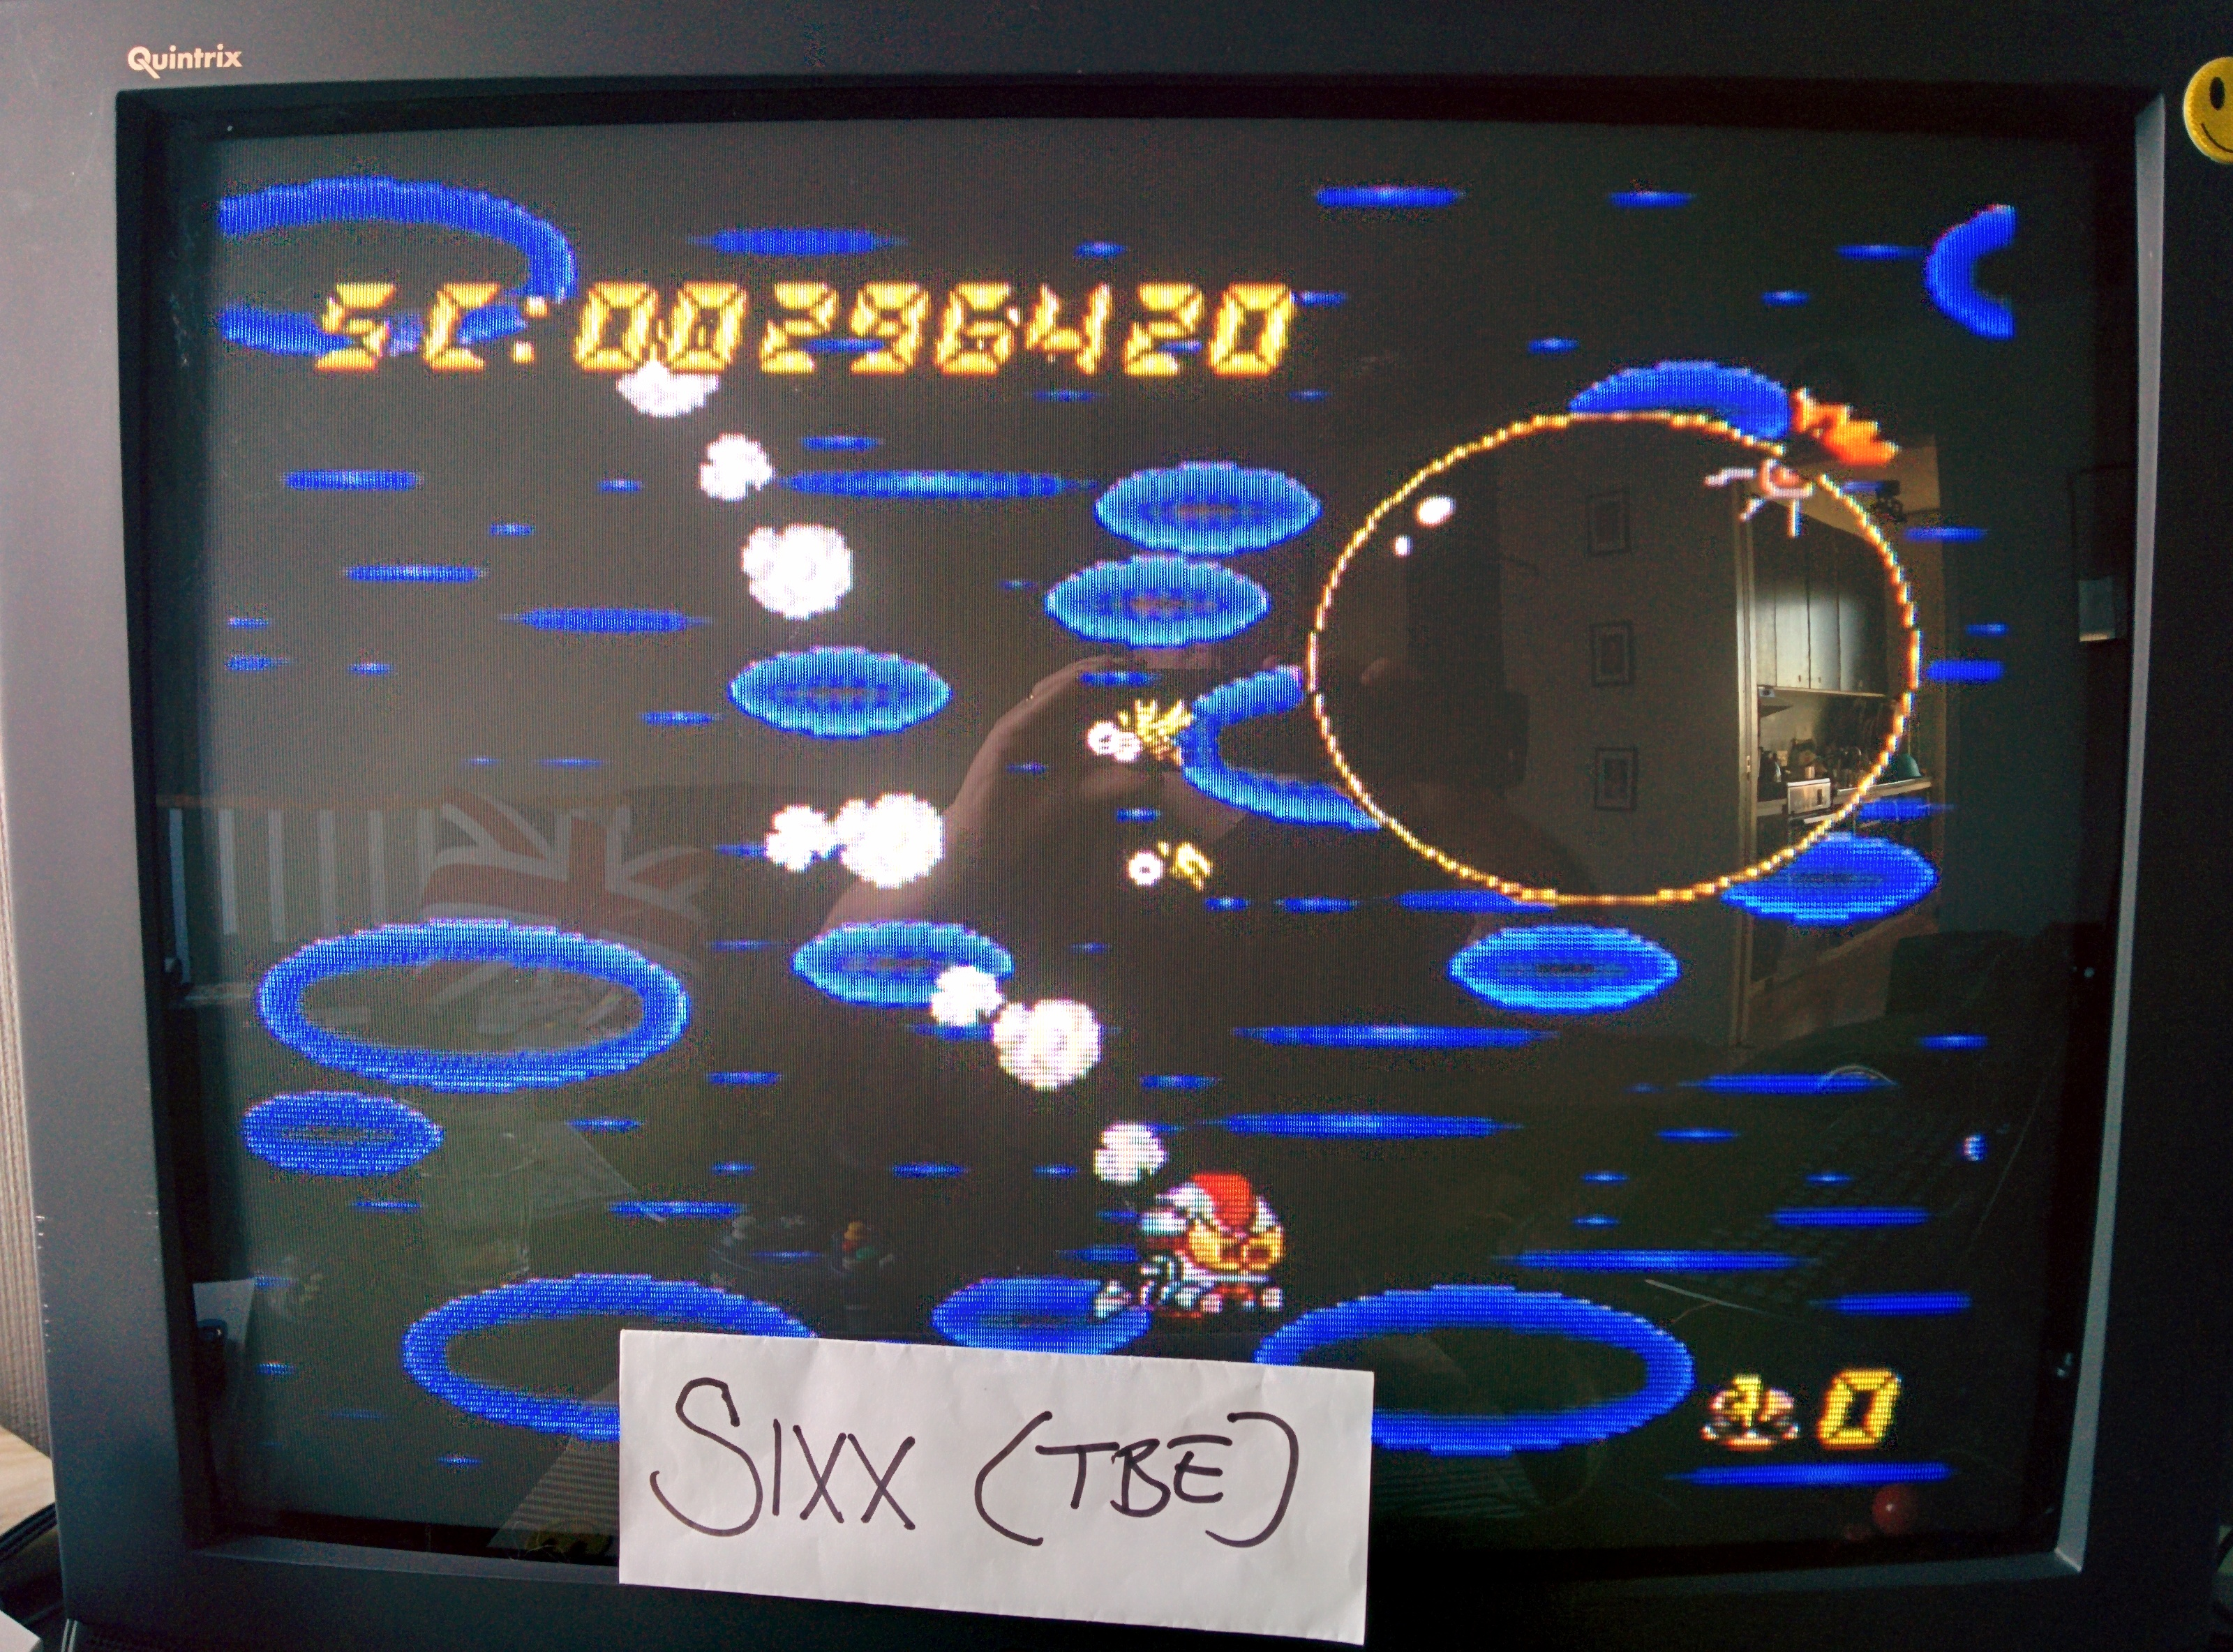 Sixx: Air Zonk [Spicy] (TurboGrafx-16/PC Engine Emulated) 296,420 points on 2014-06-18 13:31:07